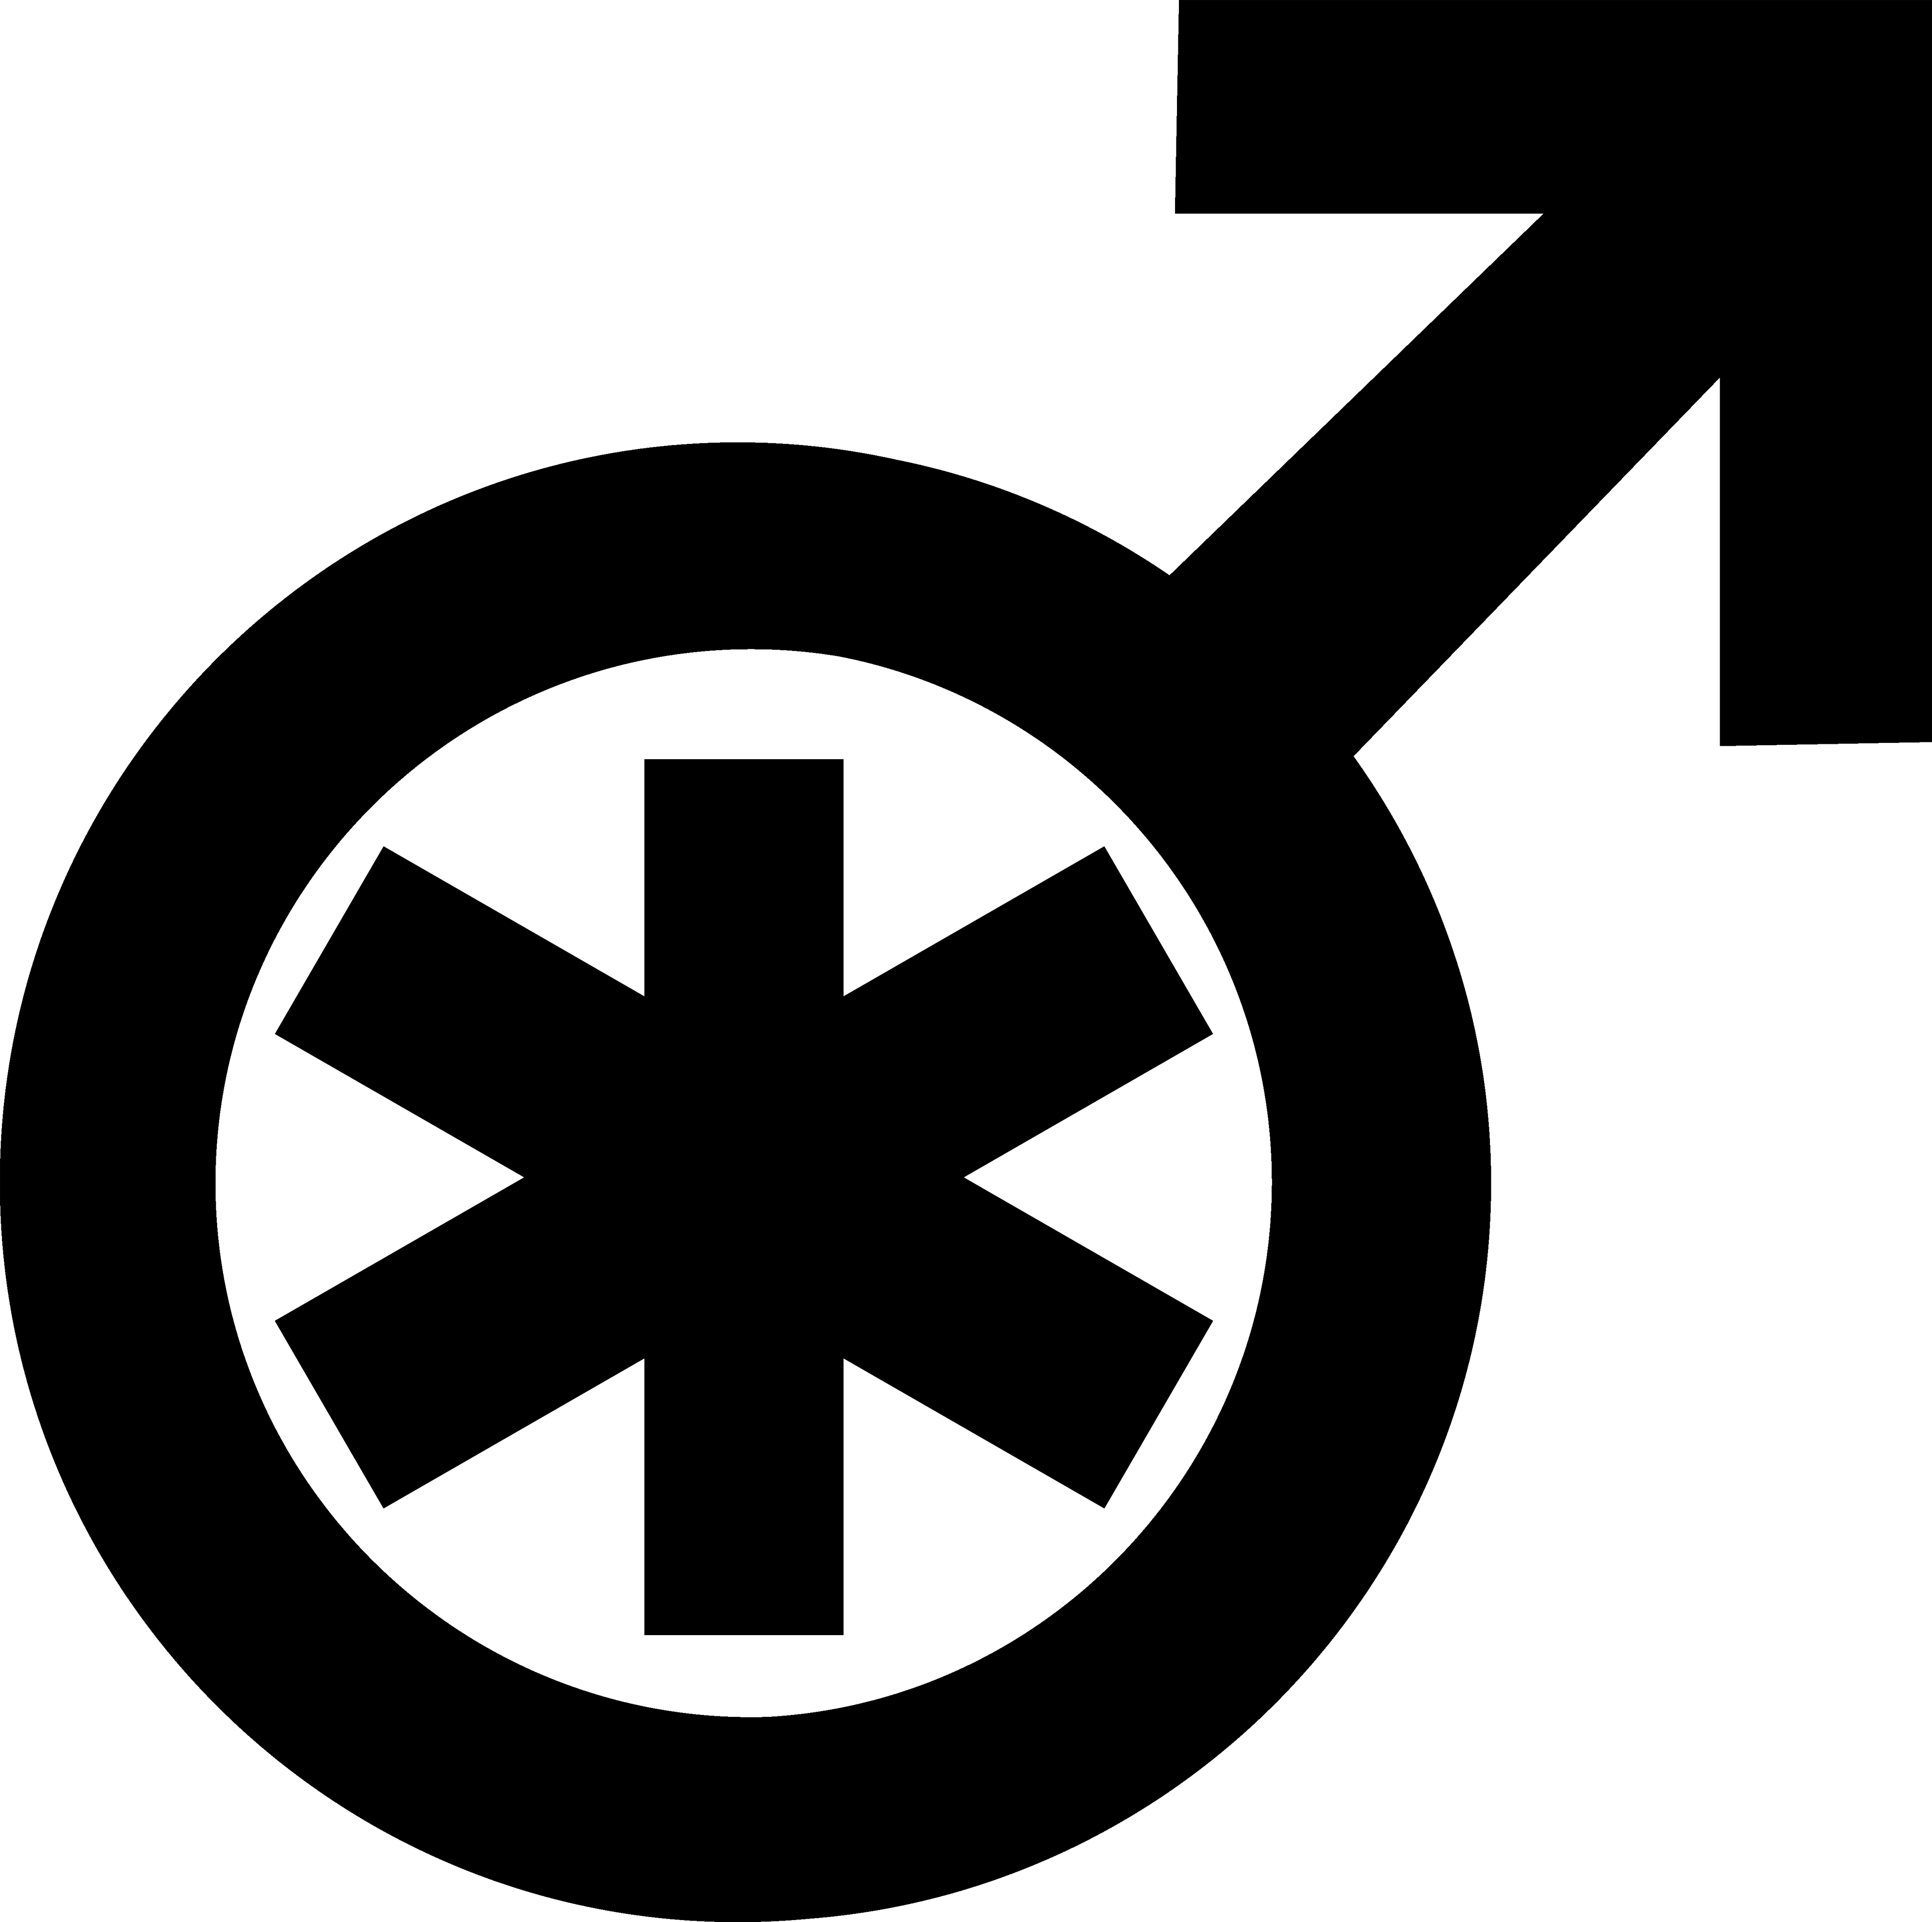 A Mars symbol (circle with an arrow coming out from its border towards up and to the right) with an asterisk within the circle.